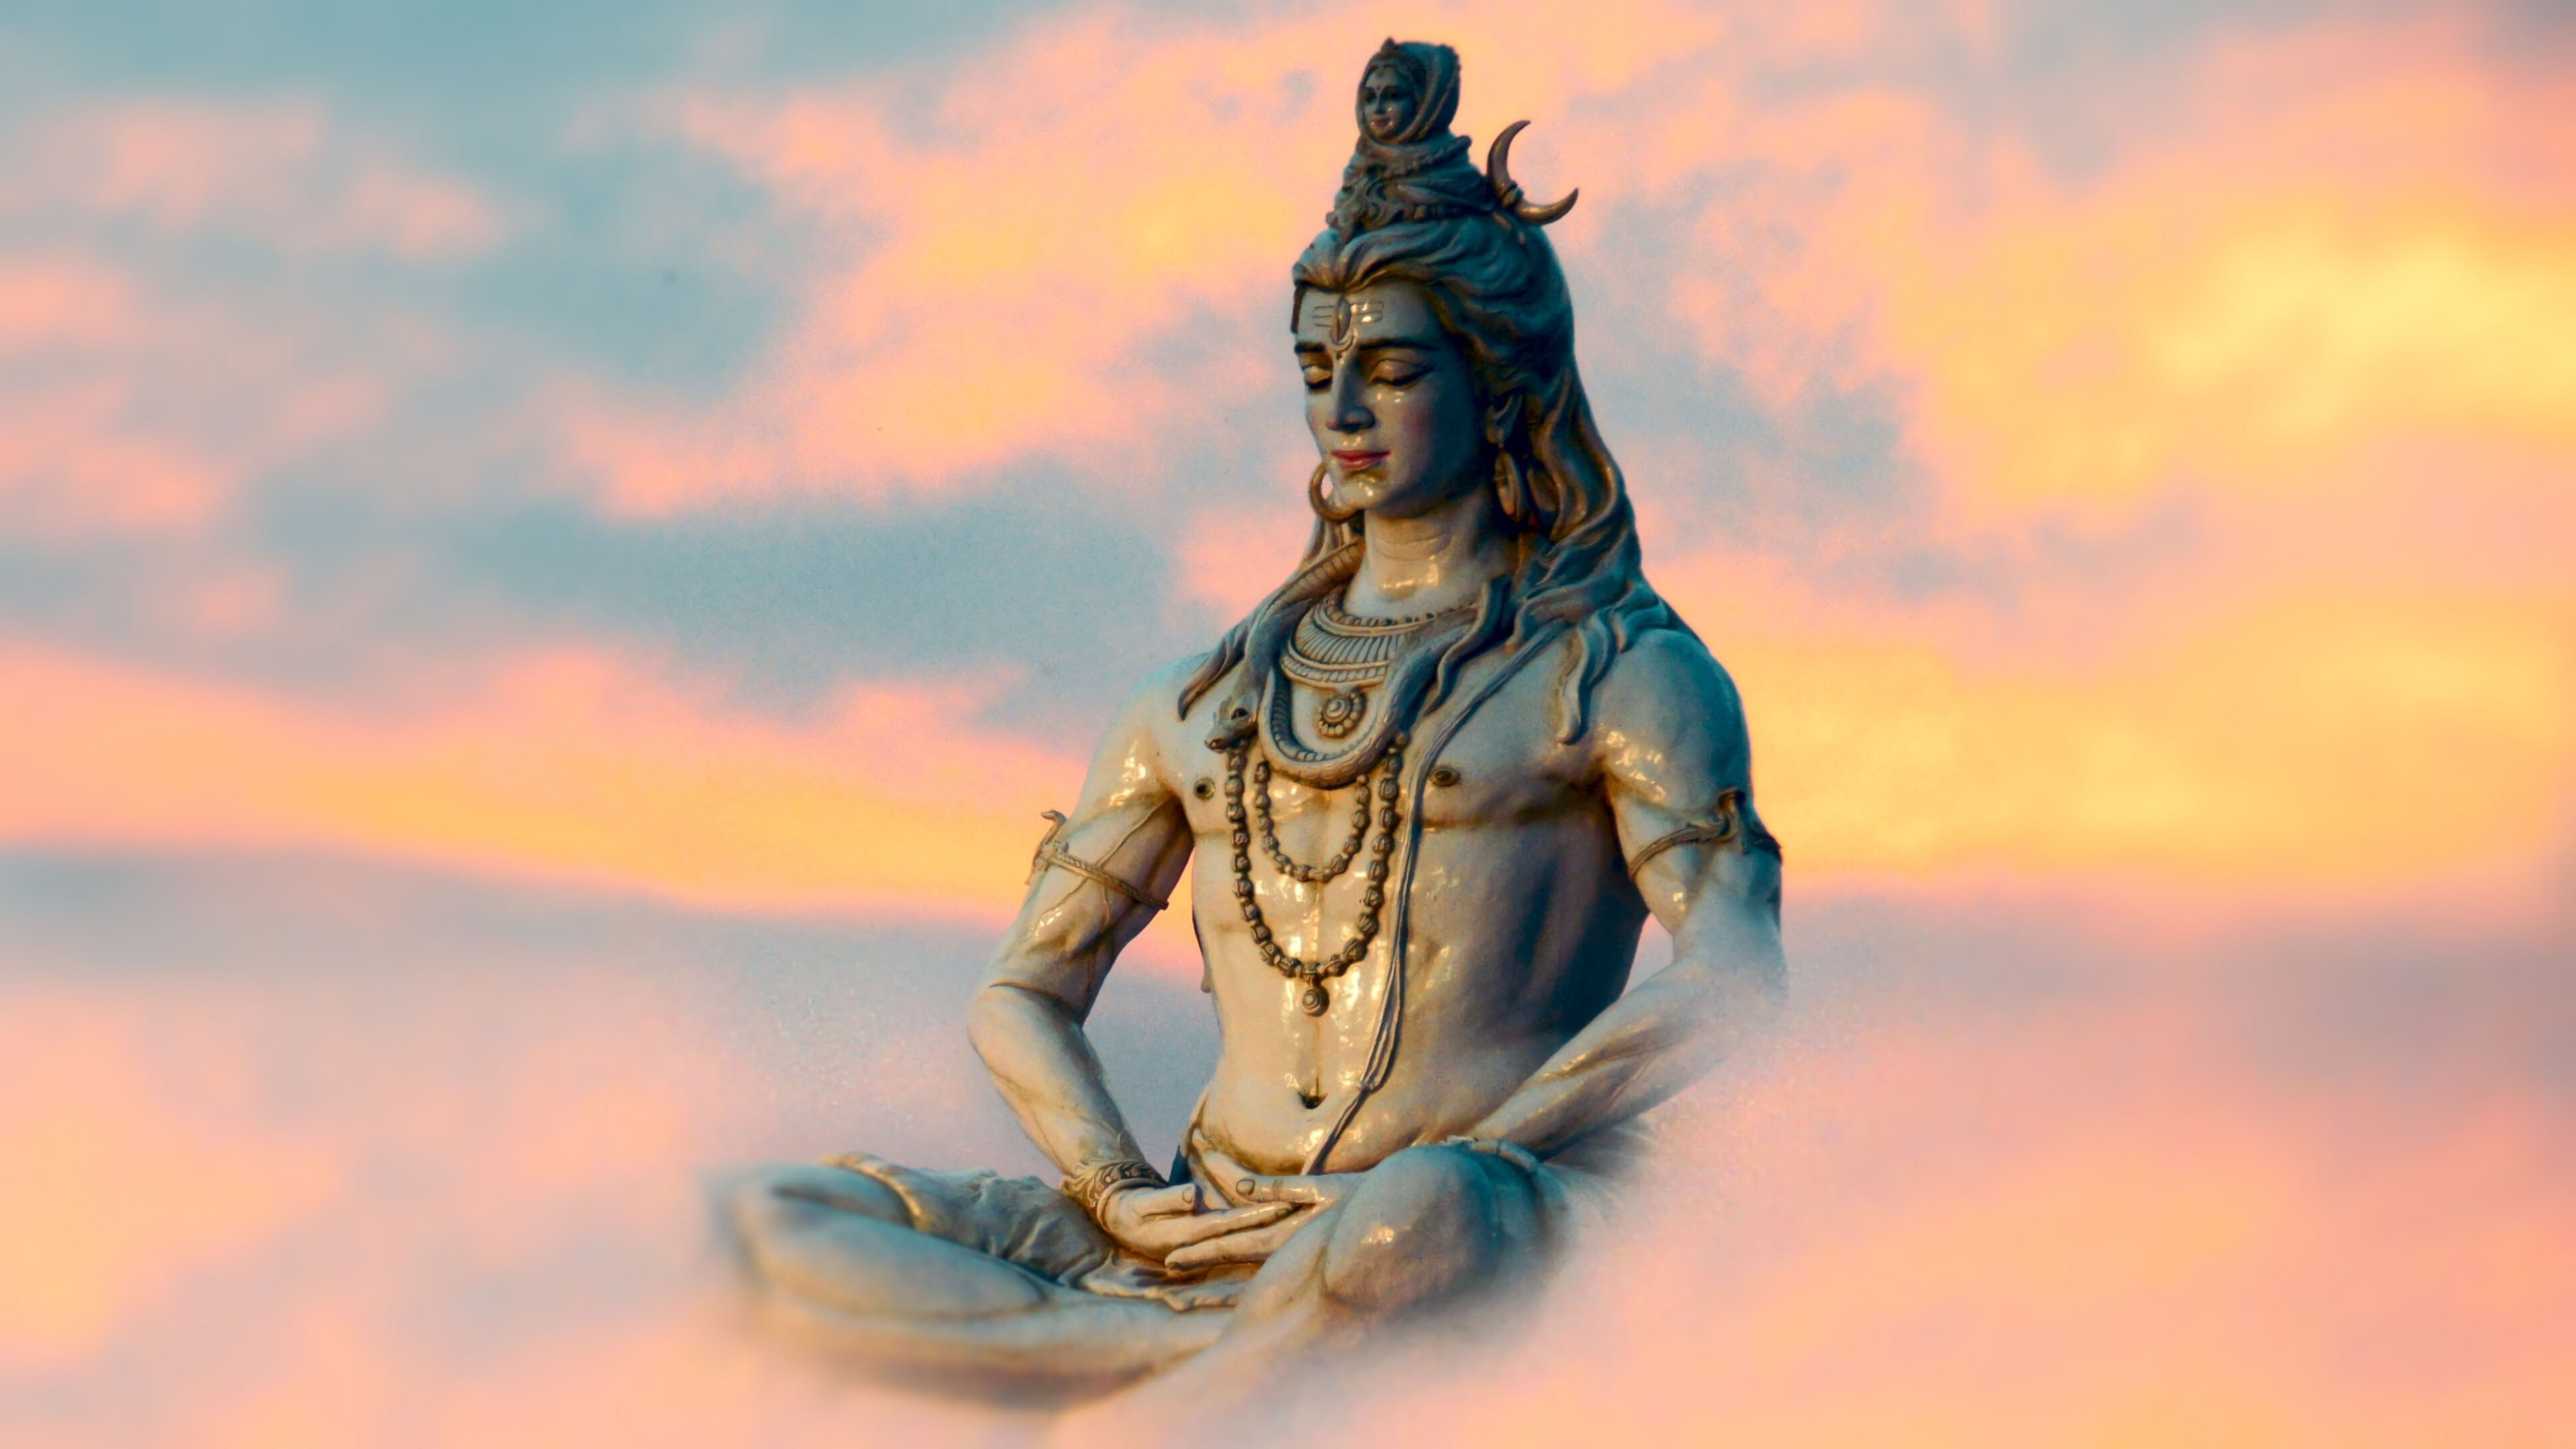 Cool Wallpaper High Resolution Lord Shiva - Popular_Lord_Shiva_Statue  Pic_491117.jpg